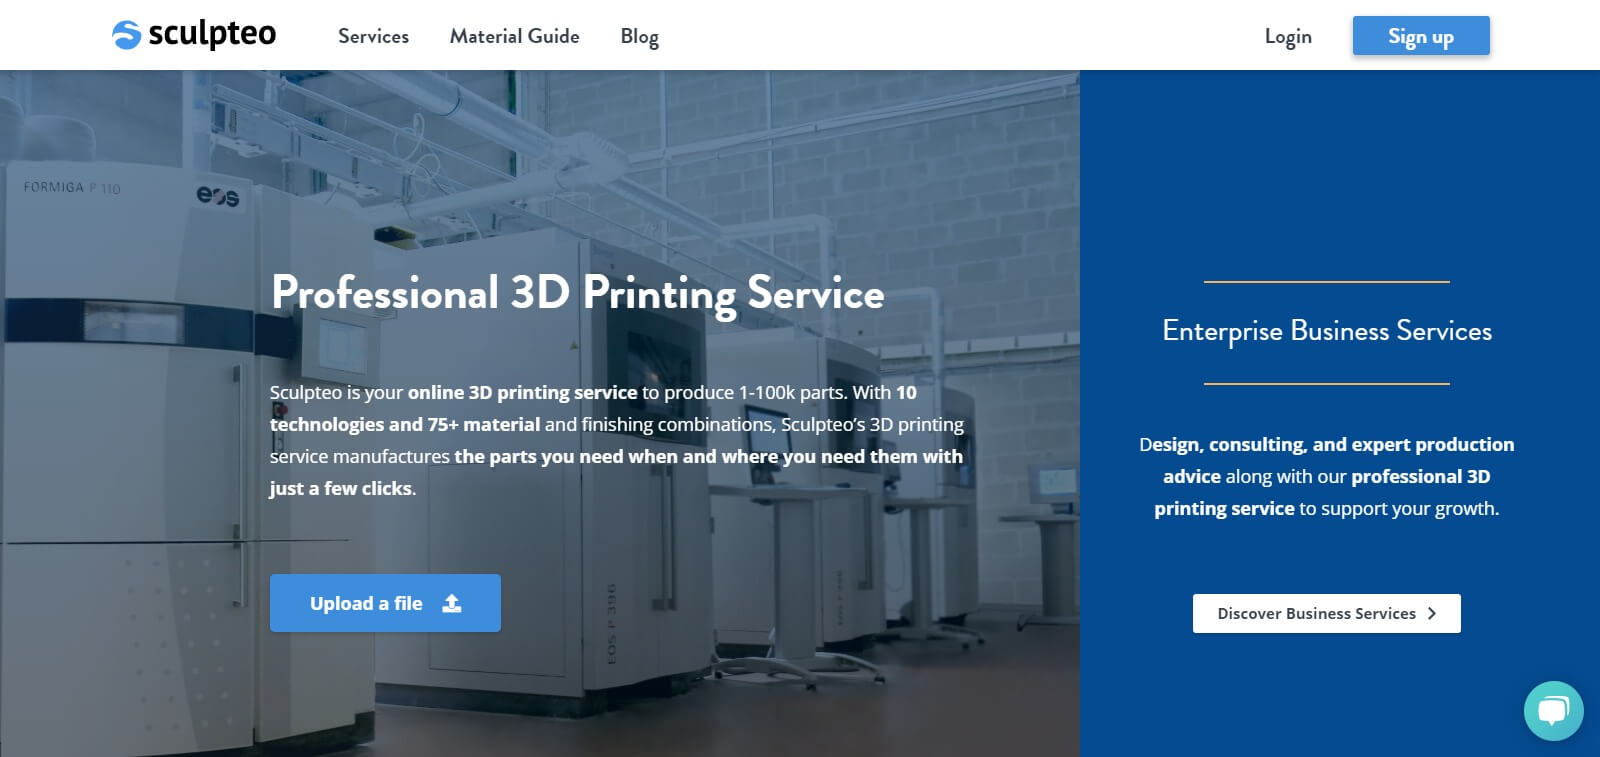 Sculpteo - Online 3D Printing Service for your 3D designs - www.sculpteo.com